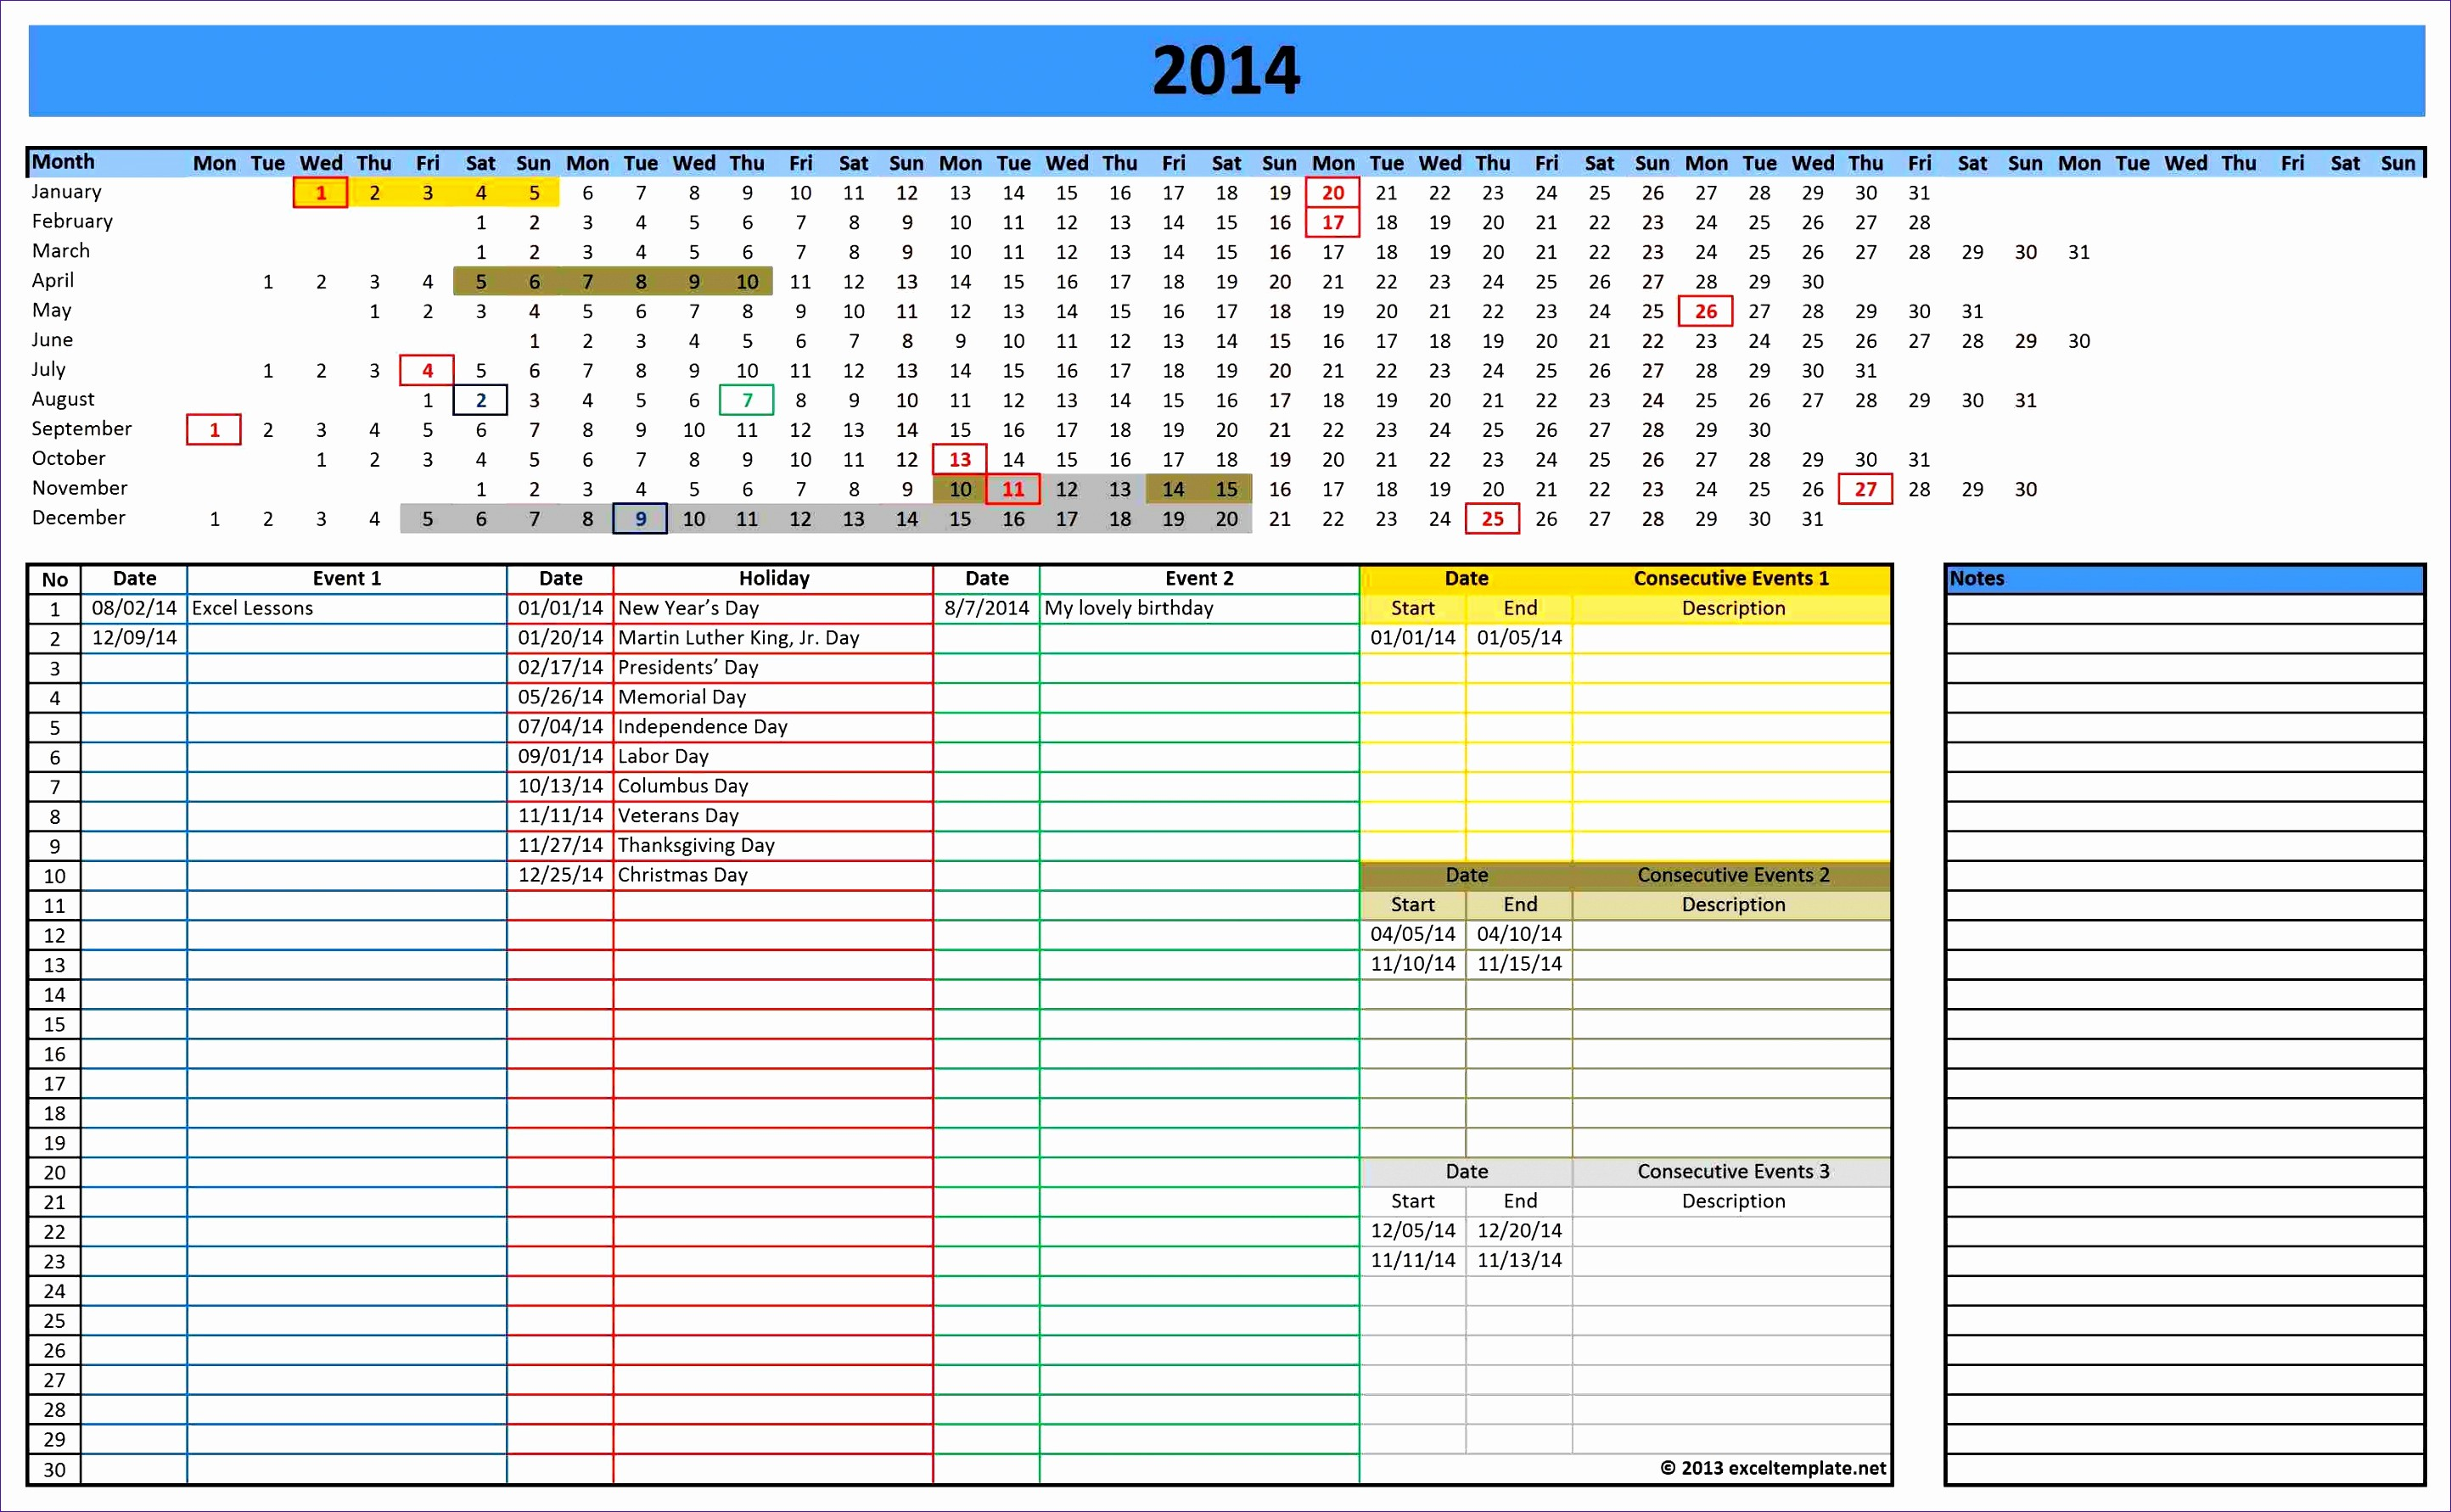 Three Month Calendar Template Excel Awesome 6 3 Month Calendar Template Excel Exceltemplates